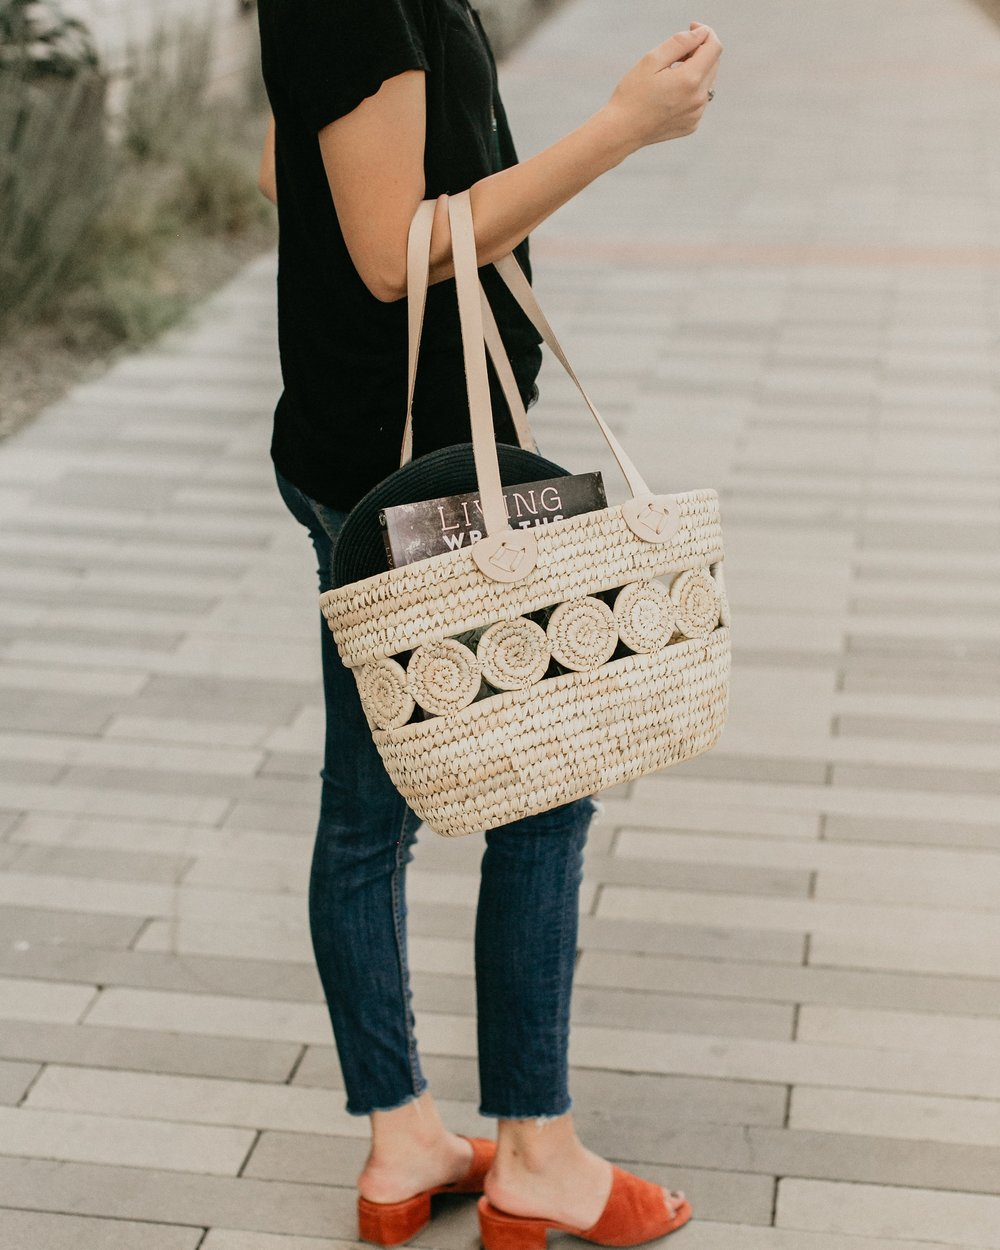 Fair Trade Basket - Ten Thousand Villages | $40 | Use STYLEMEFAIR25 for 25% off one item